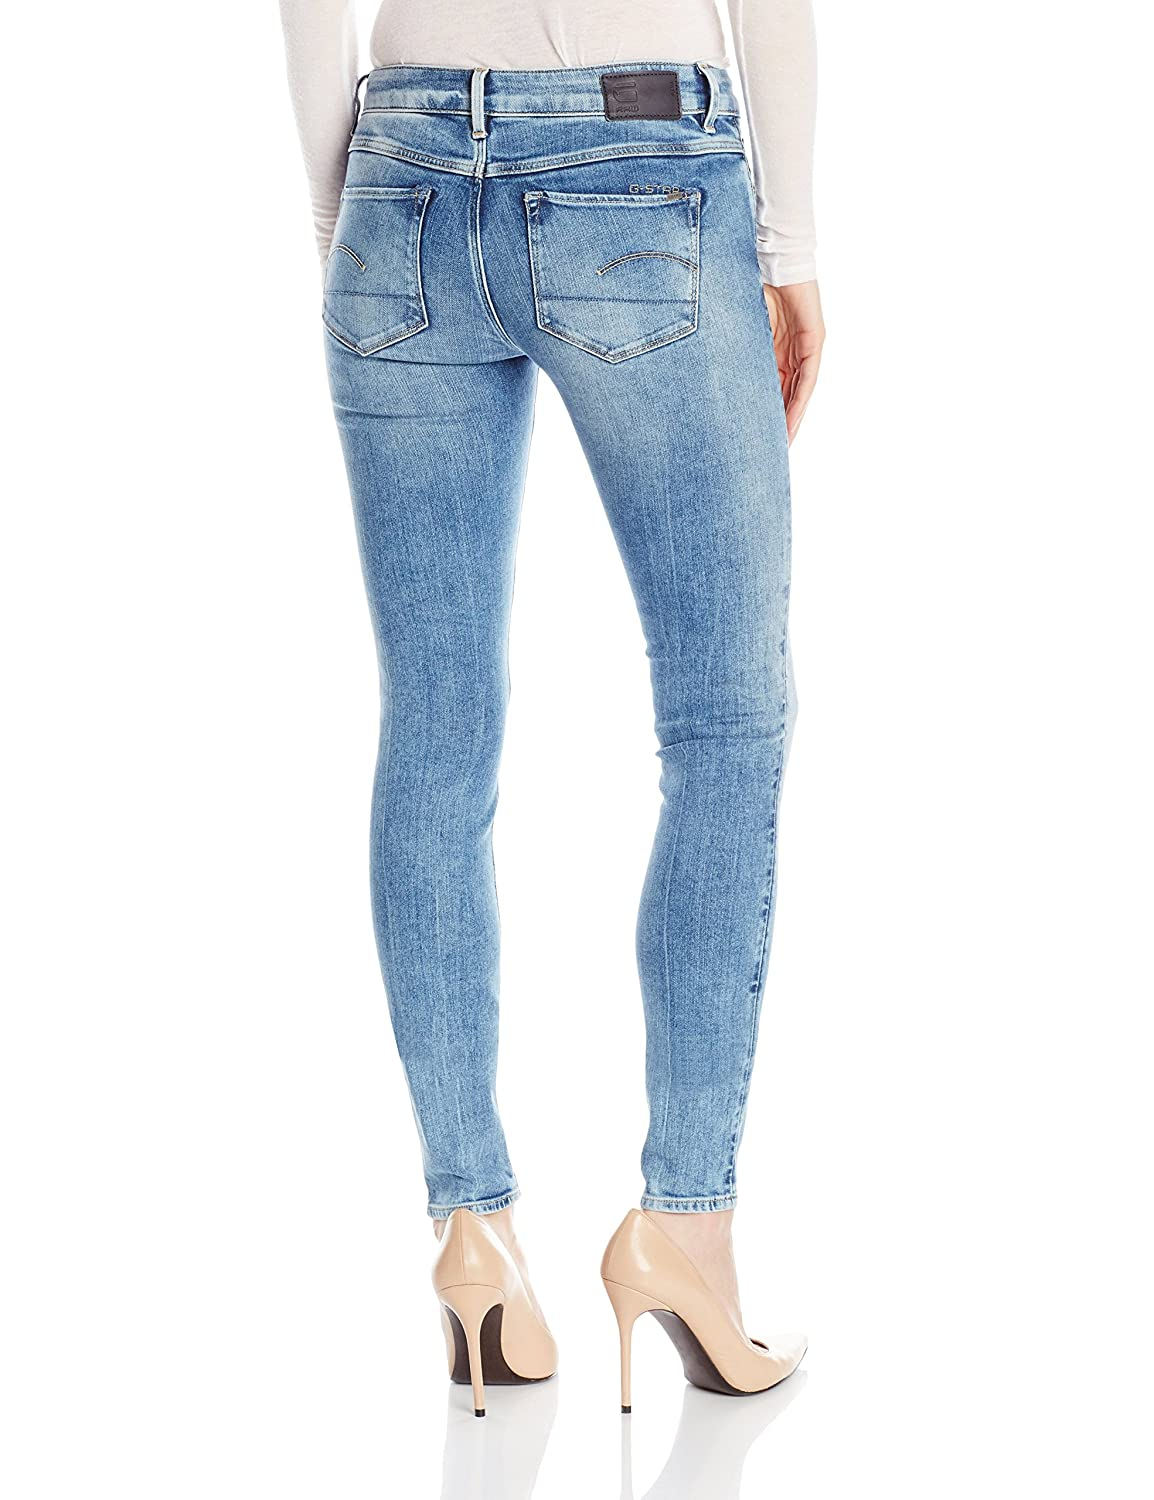 G-Star Raw Women's 3301 High Rise Skinny Fit Jean In Nippon Superstretch